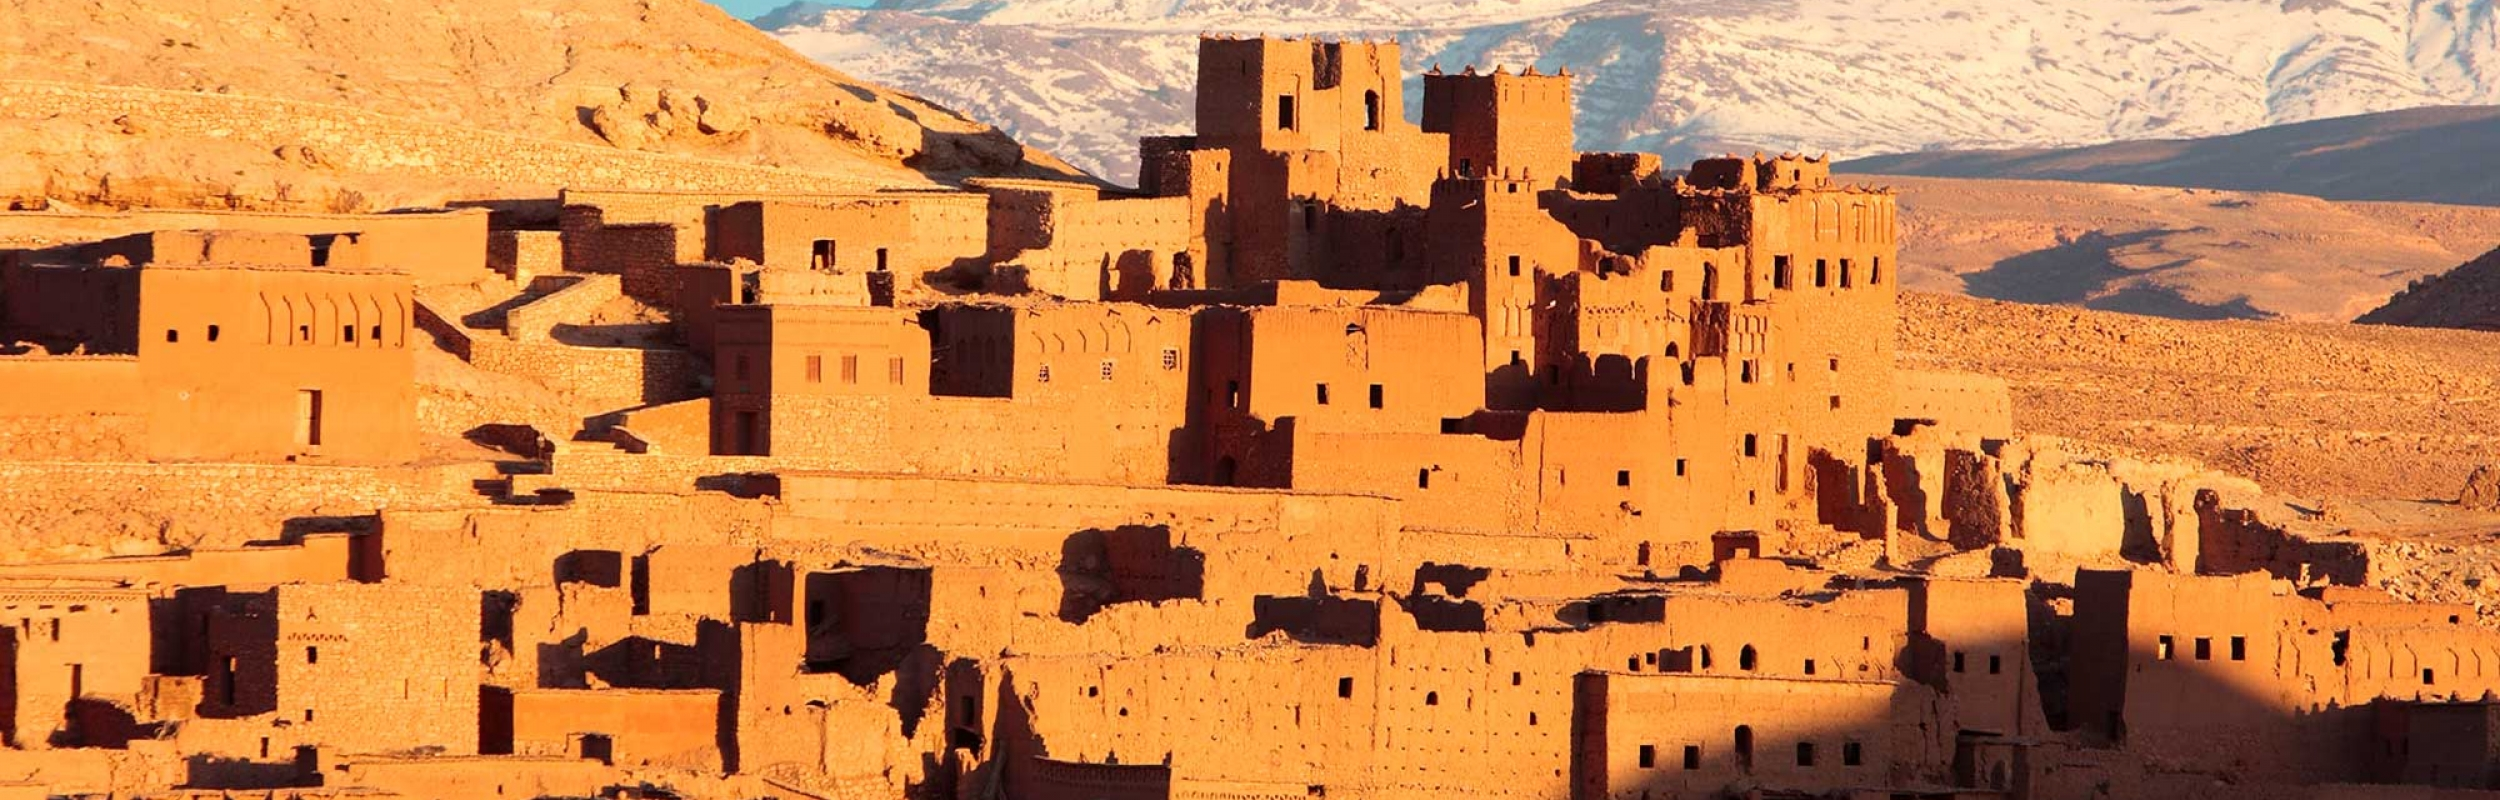 MP-morocco-tour-featured-image